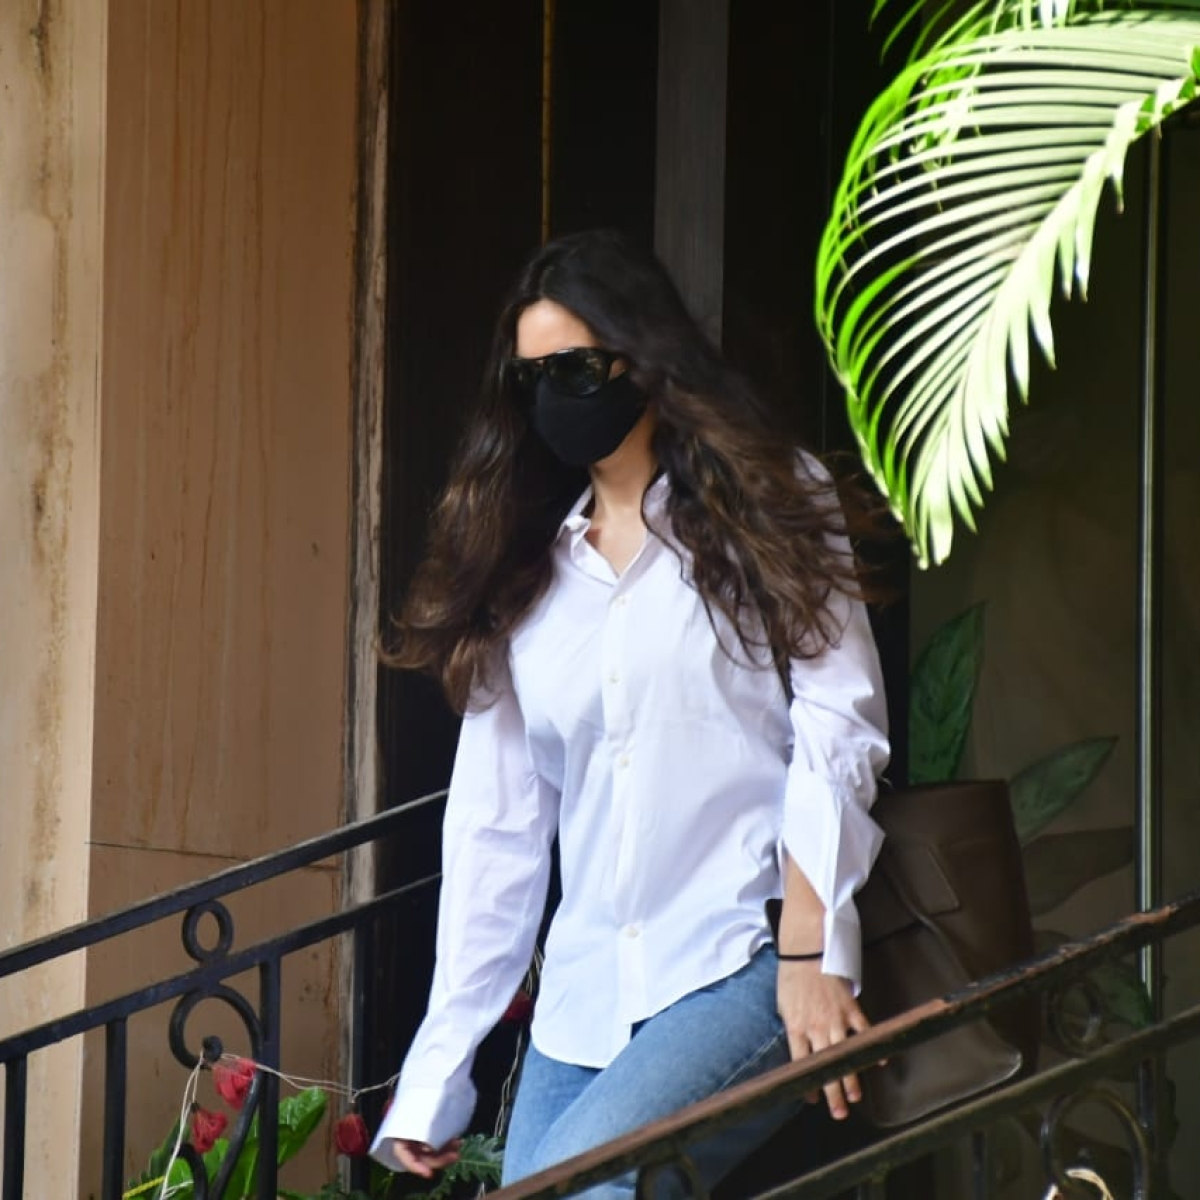 In pics: Arjun Rampal's girlfriend Gabriella Demetriades arrives at NCB office after being summoned in drugs case